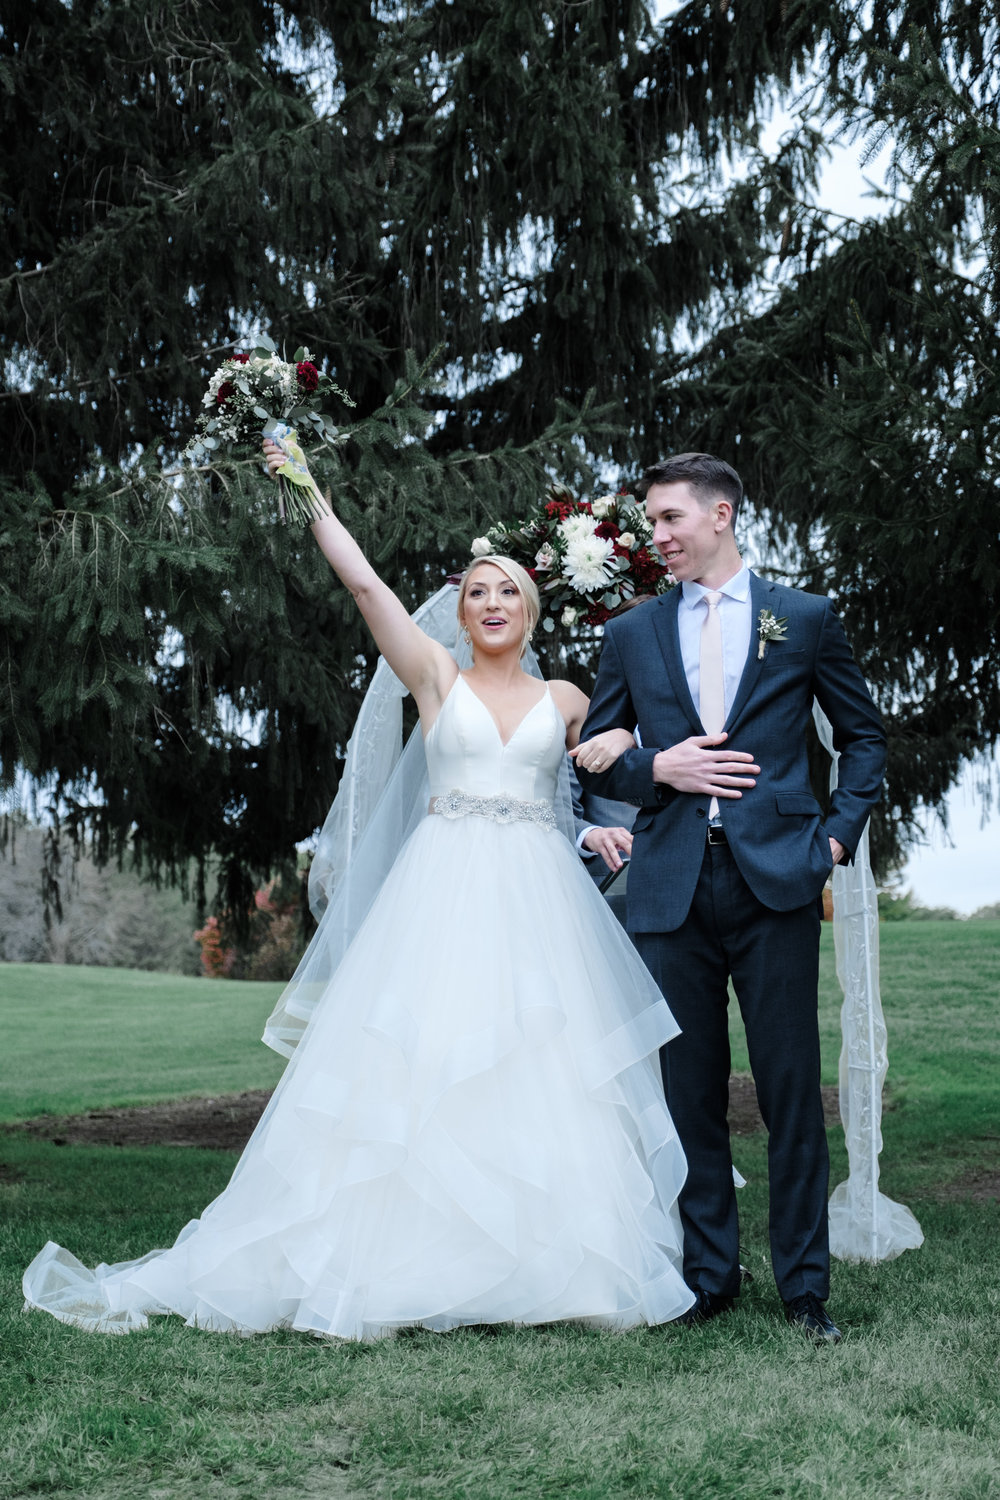 Bride and groom celebrate after saying I DO at Rockford Bank and Trust Pavilion.